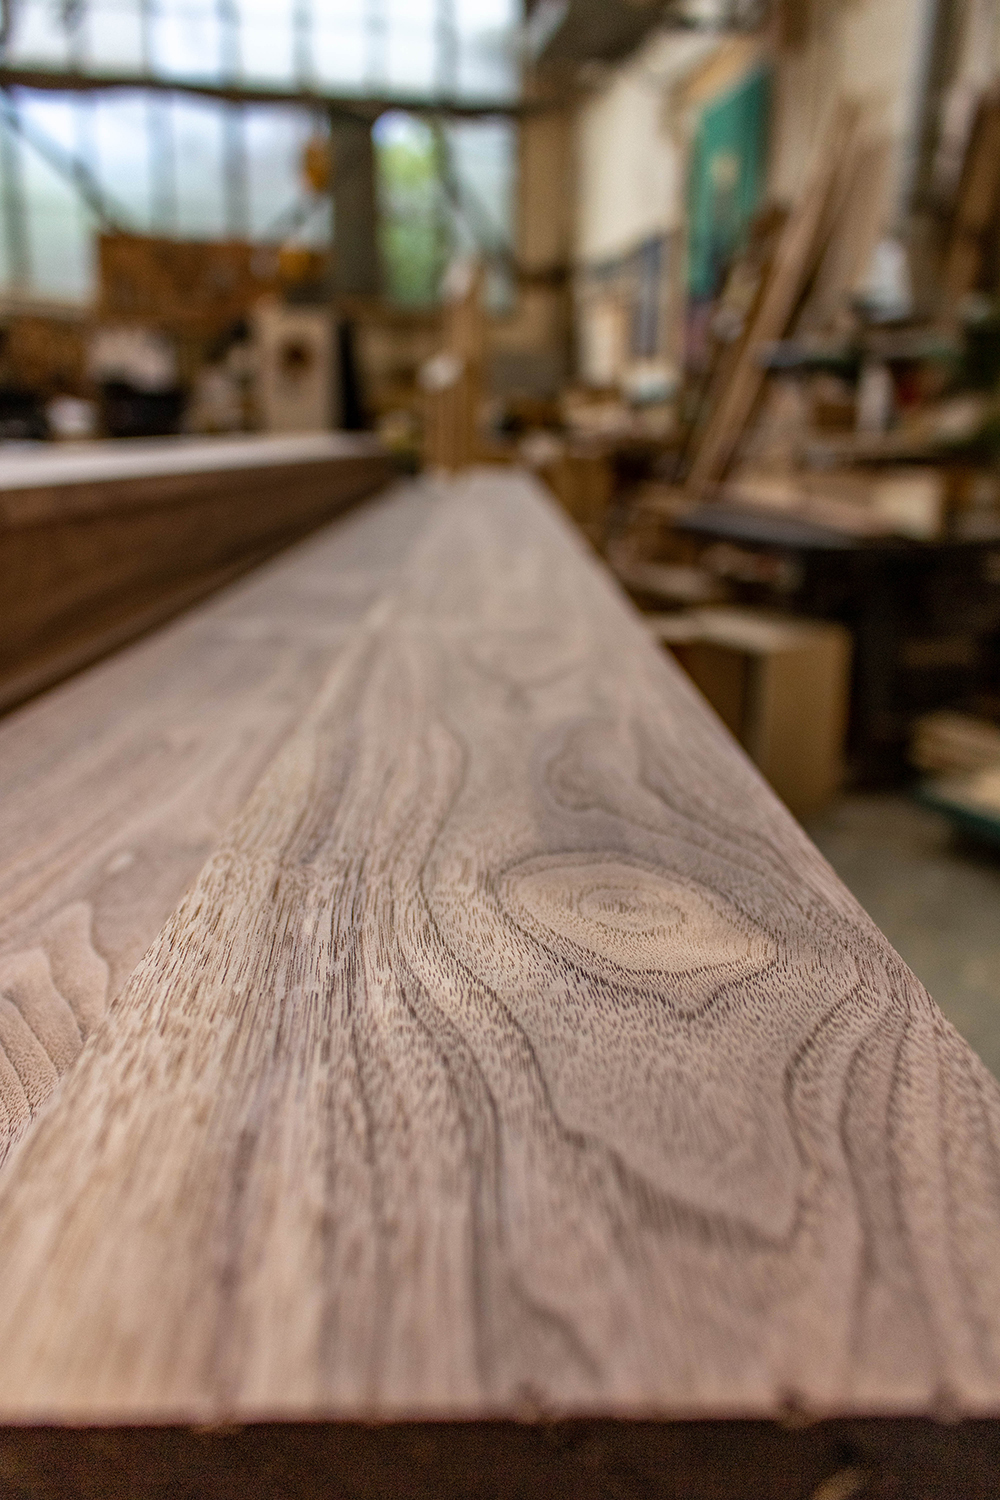 Plank of wood in joinery workshop